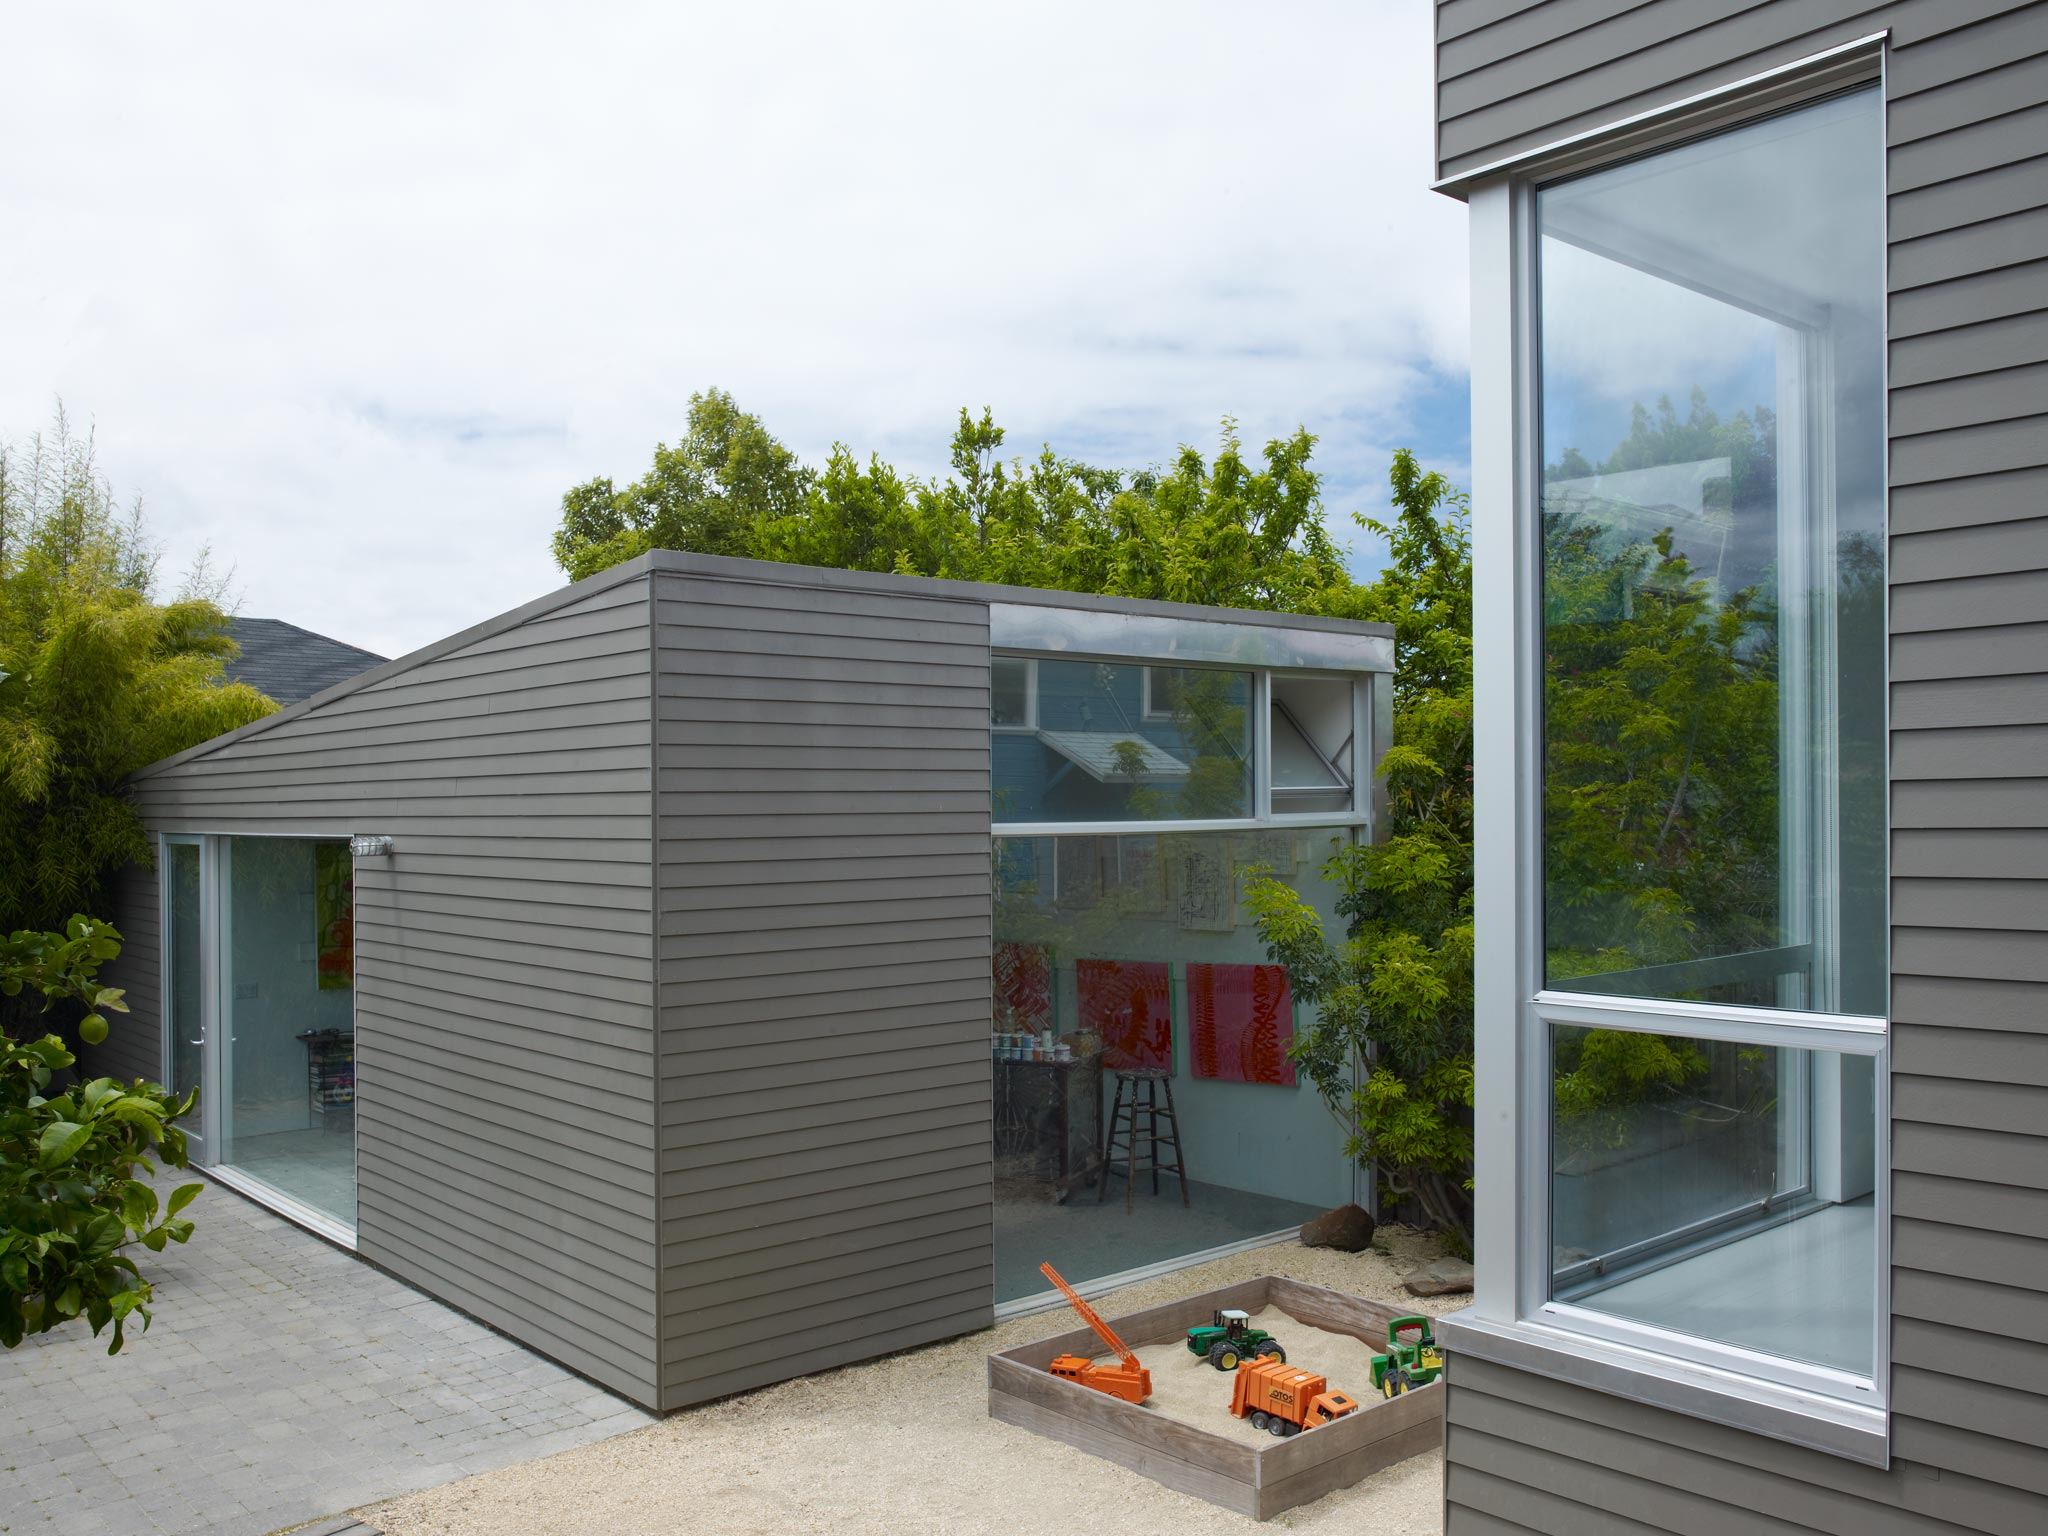 Oakland Urban modern master suite, roof deck and artist's studio exterior view of house